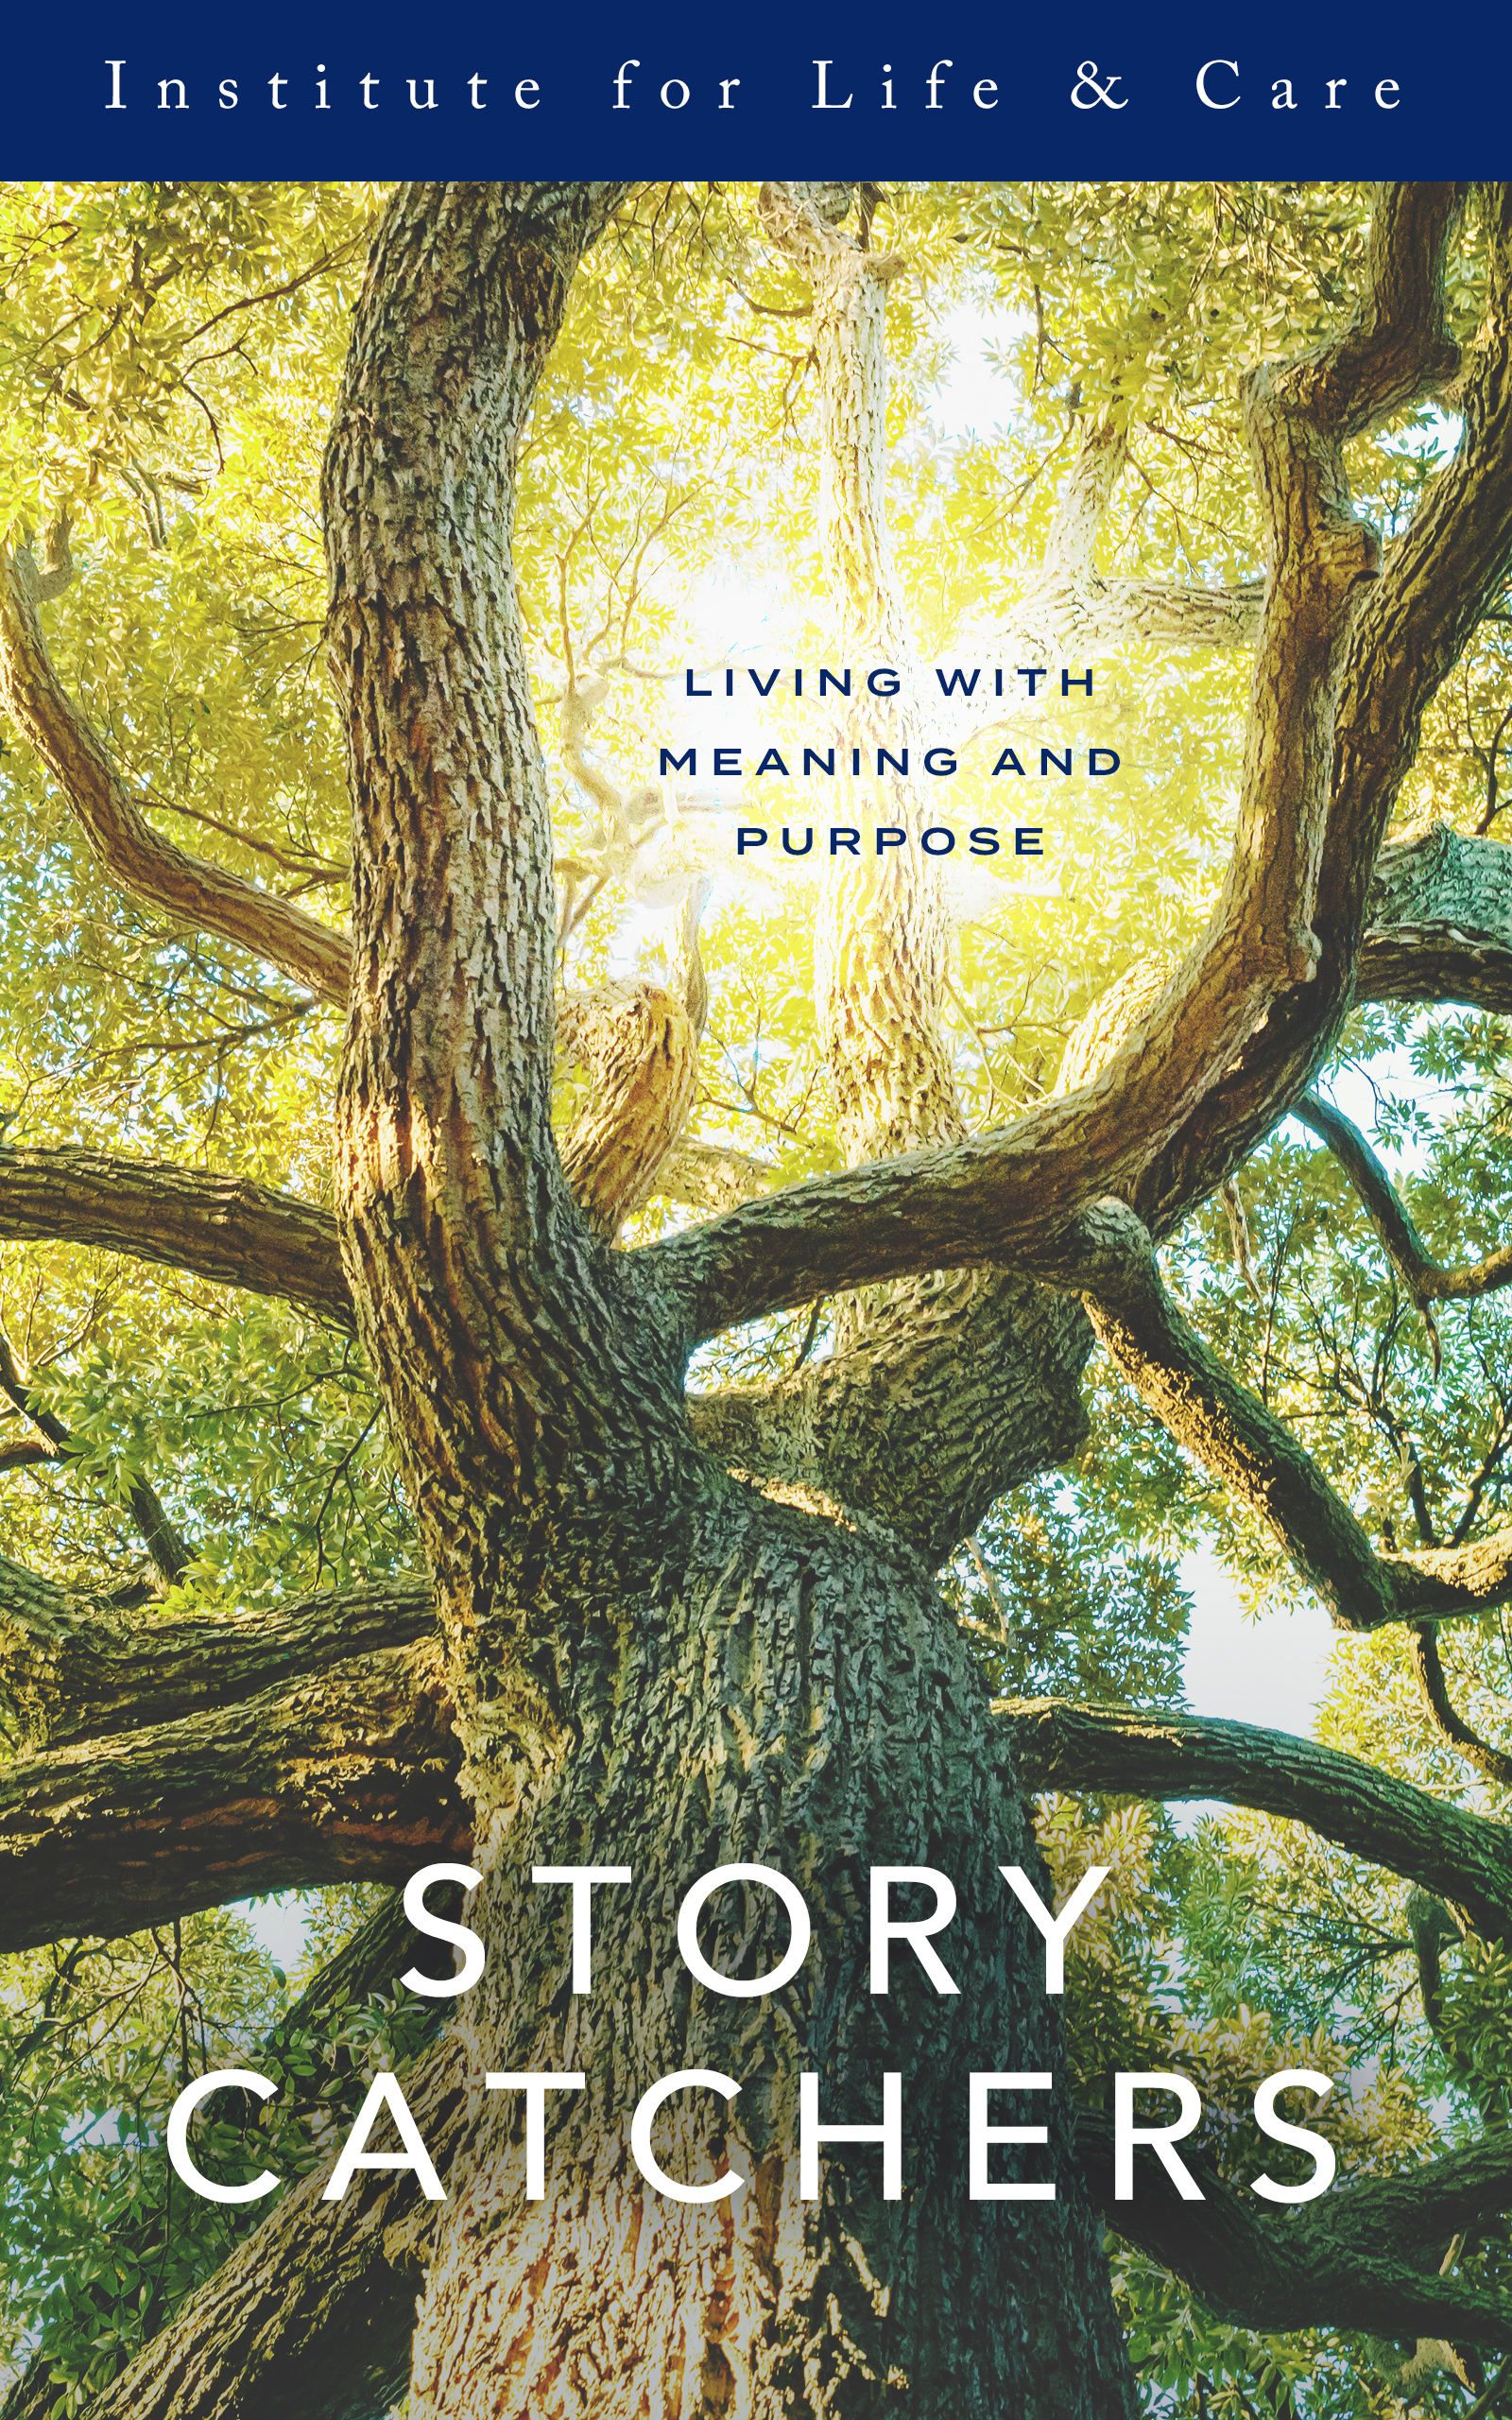 """story catchers - Story Catchers is a transformational workbook that allows the reader to navigate the elementary components of the THRIVING FROM WITHIN® model. The purpose of the book is to gain insight on your own story and how to enhance meaning and purpose in your life.In today's world it is easy to feel that we are not """"enough"""", attractive enough…you name it. Desperate to fit in, we spend a lot of time pretending to be someone we're not, losing our way in the process.When we know who we are we can focus on what truly matters, our sense of meaning and purpose, and sharing our gifts and talents with the world."""